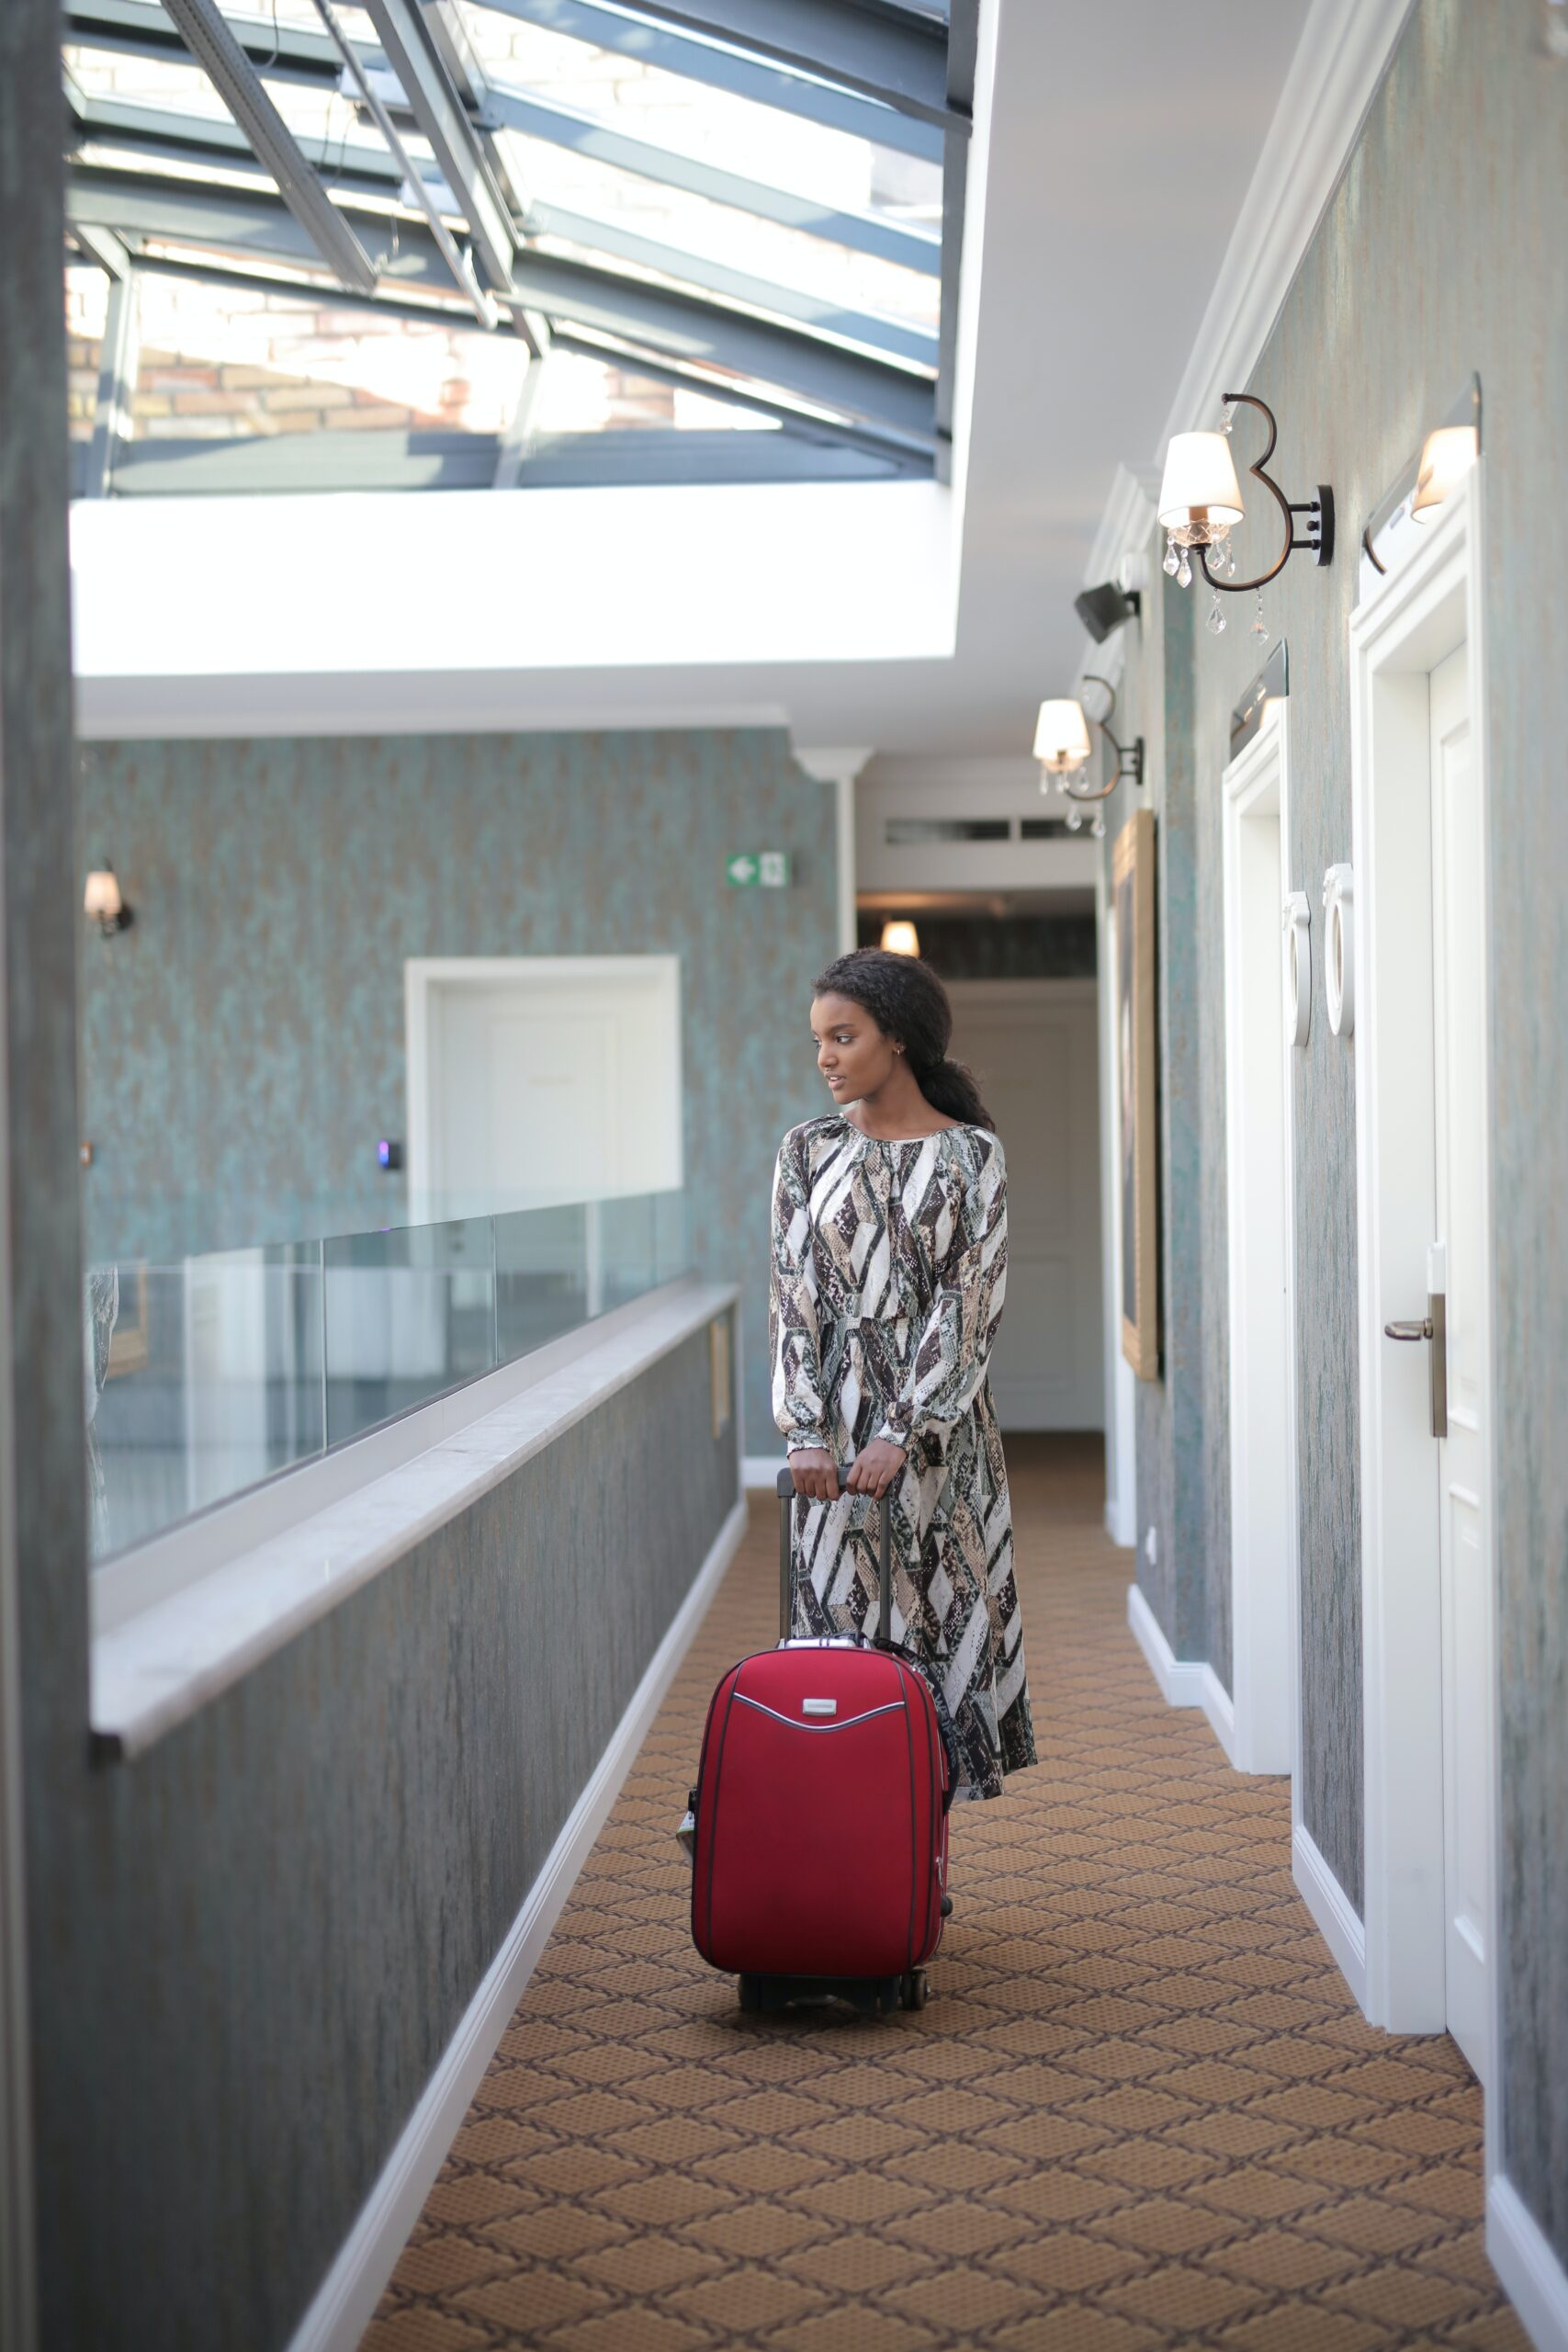 woman travelling with luggage